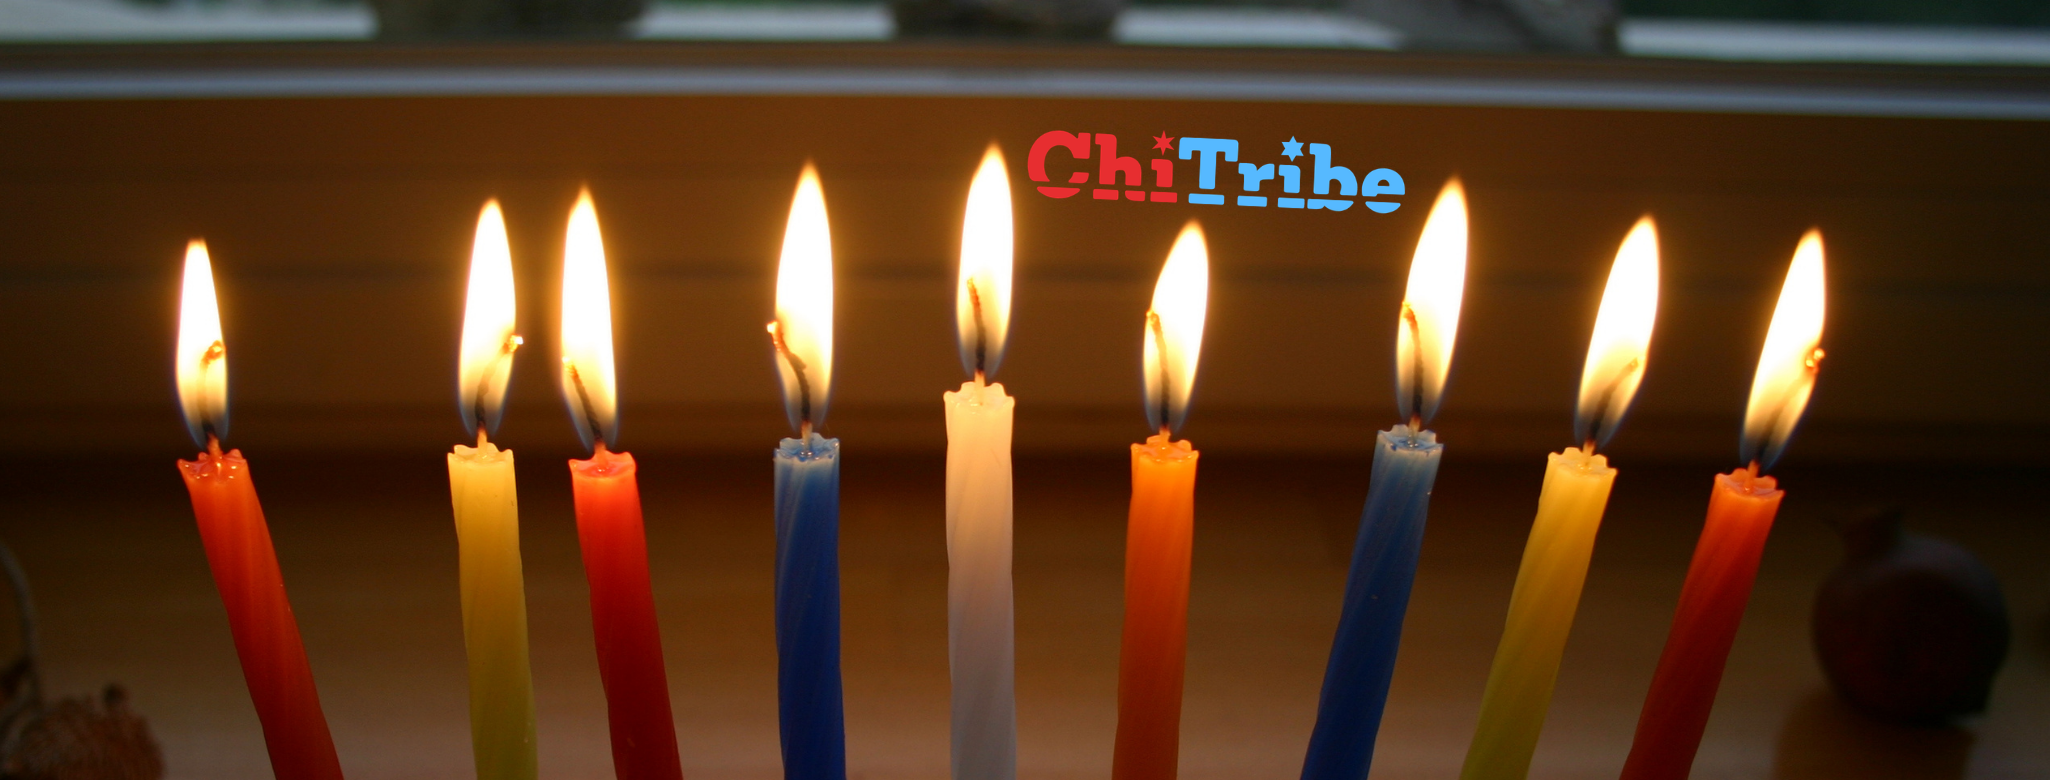 chanukah 2020 chitribe